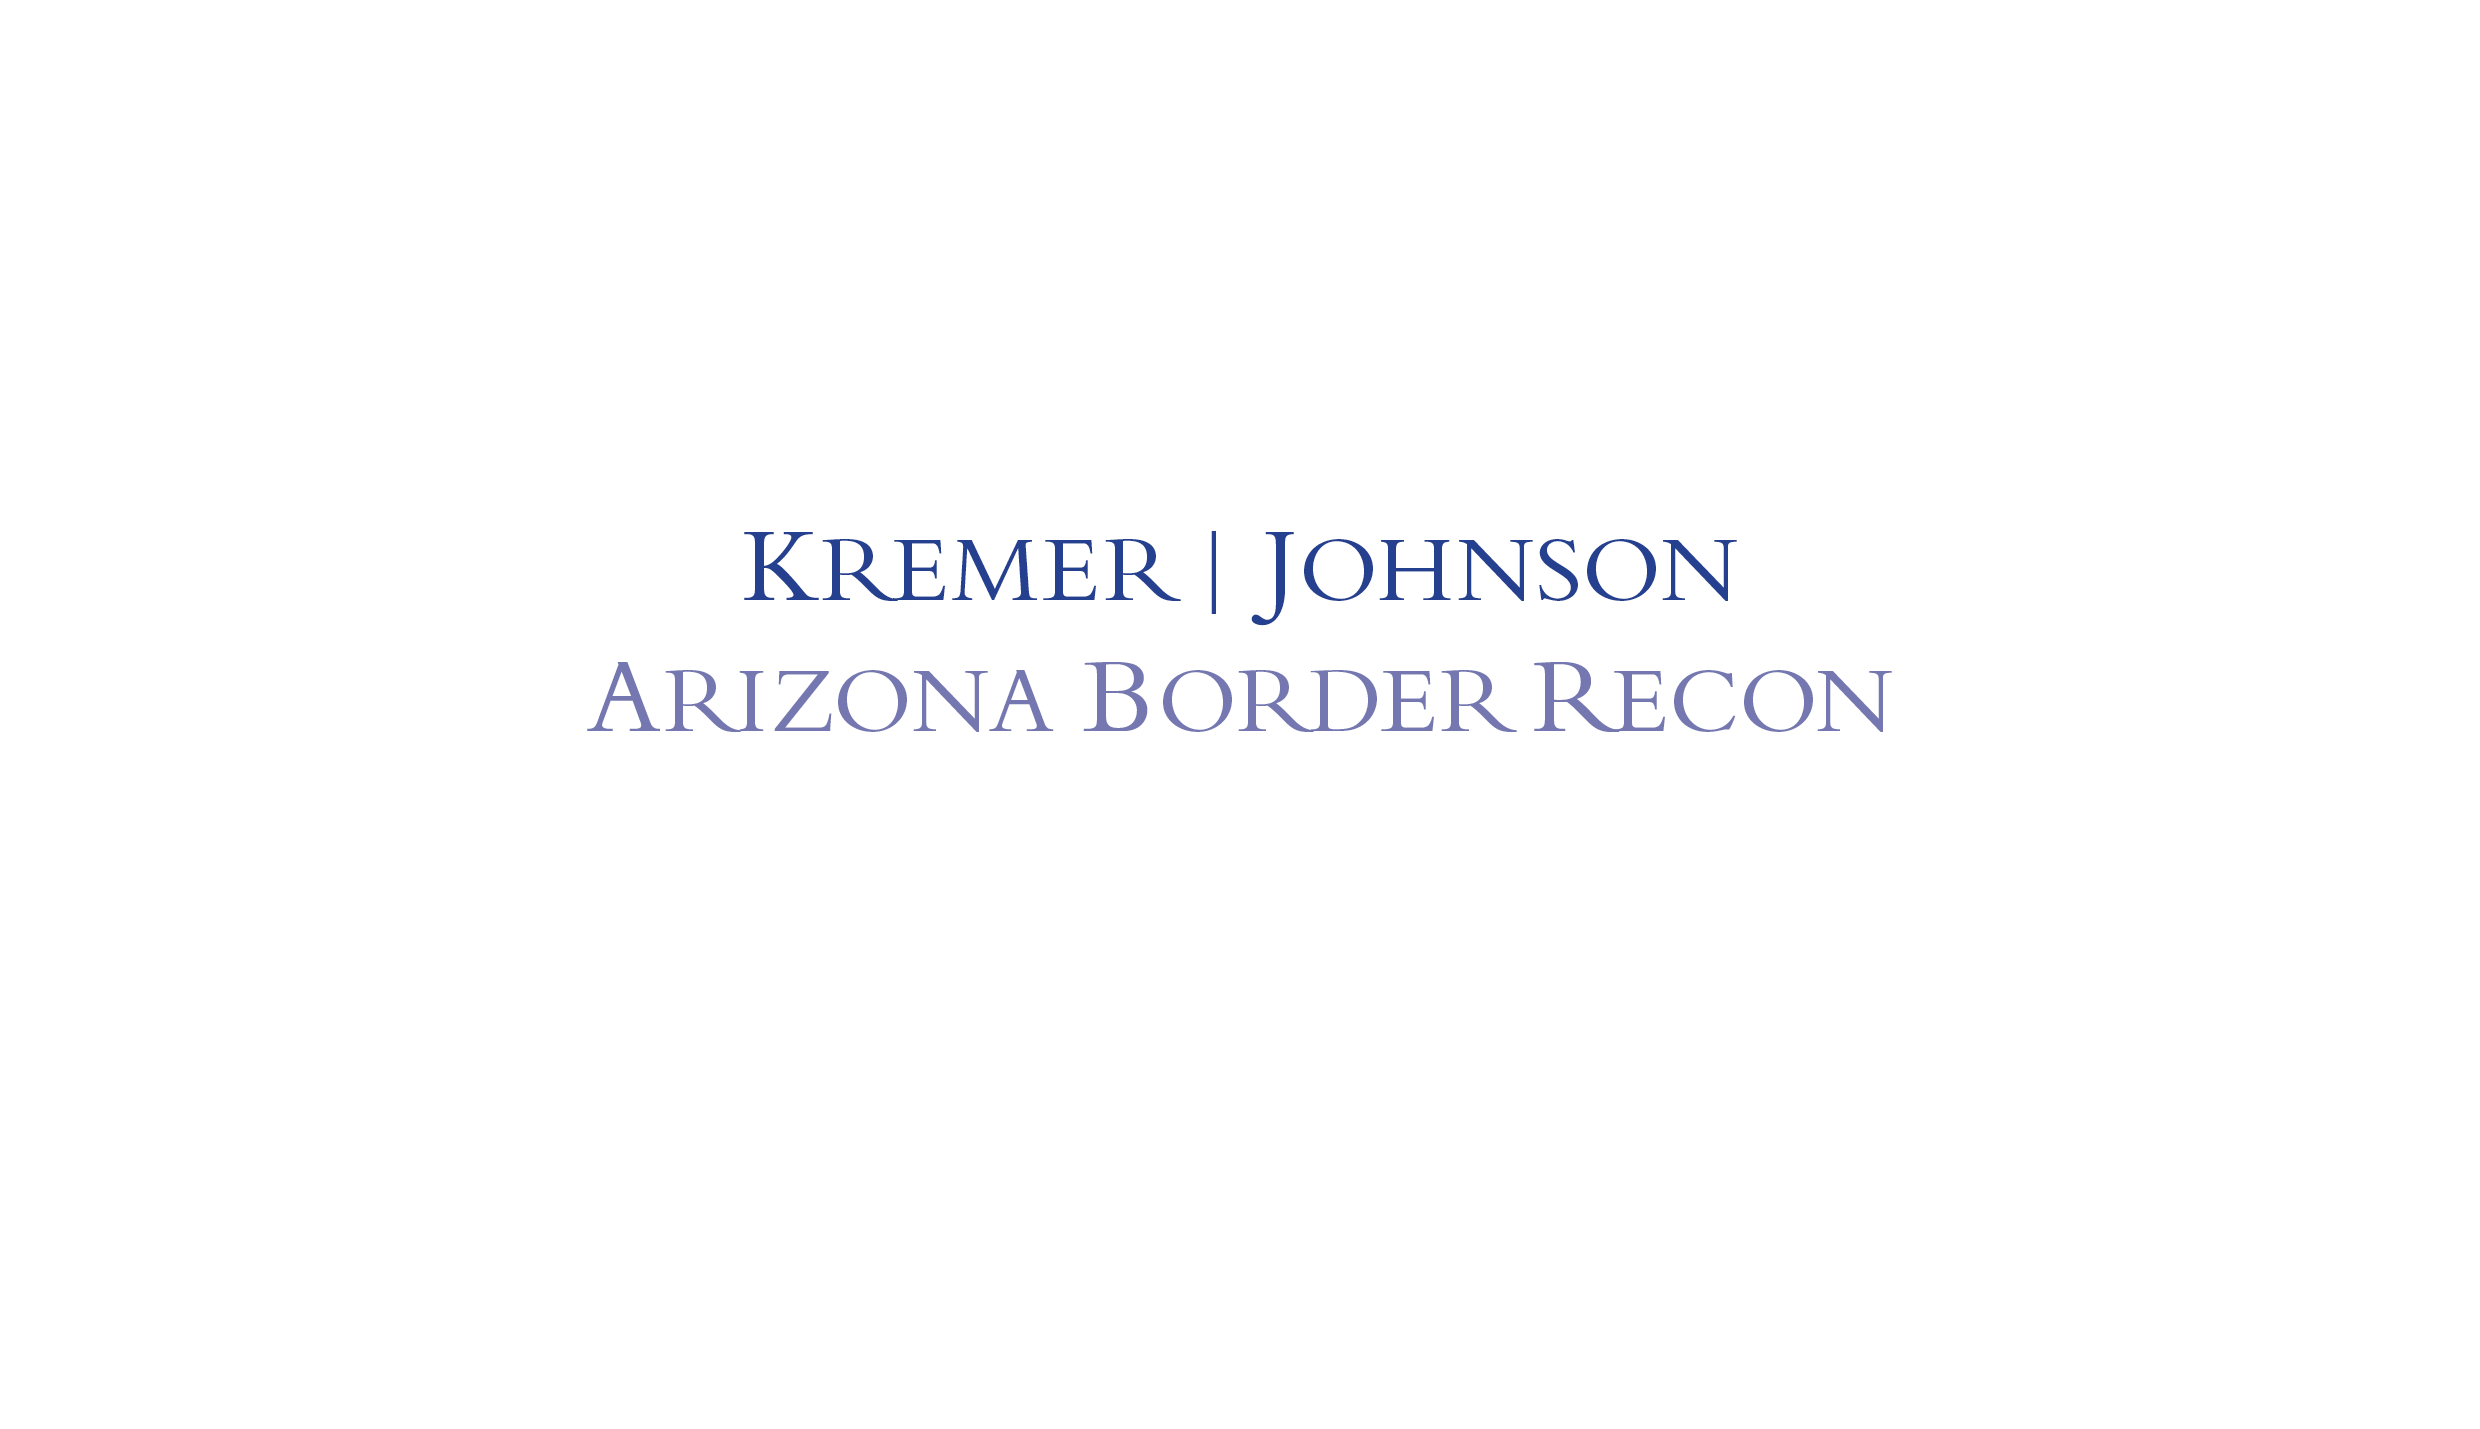 Kremer-JohnsonNFP-311-4-19